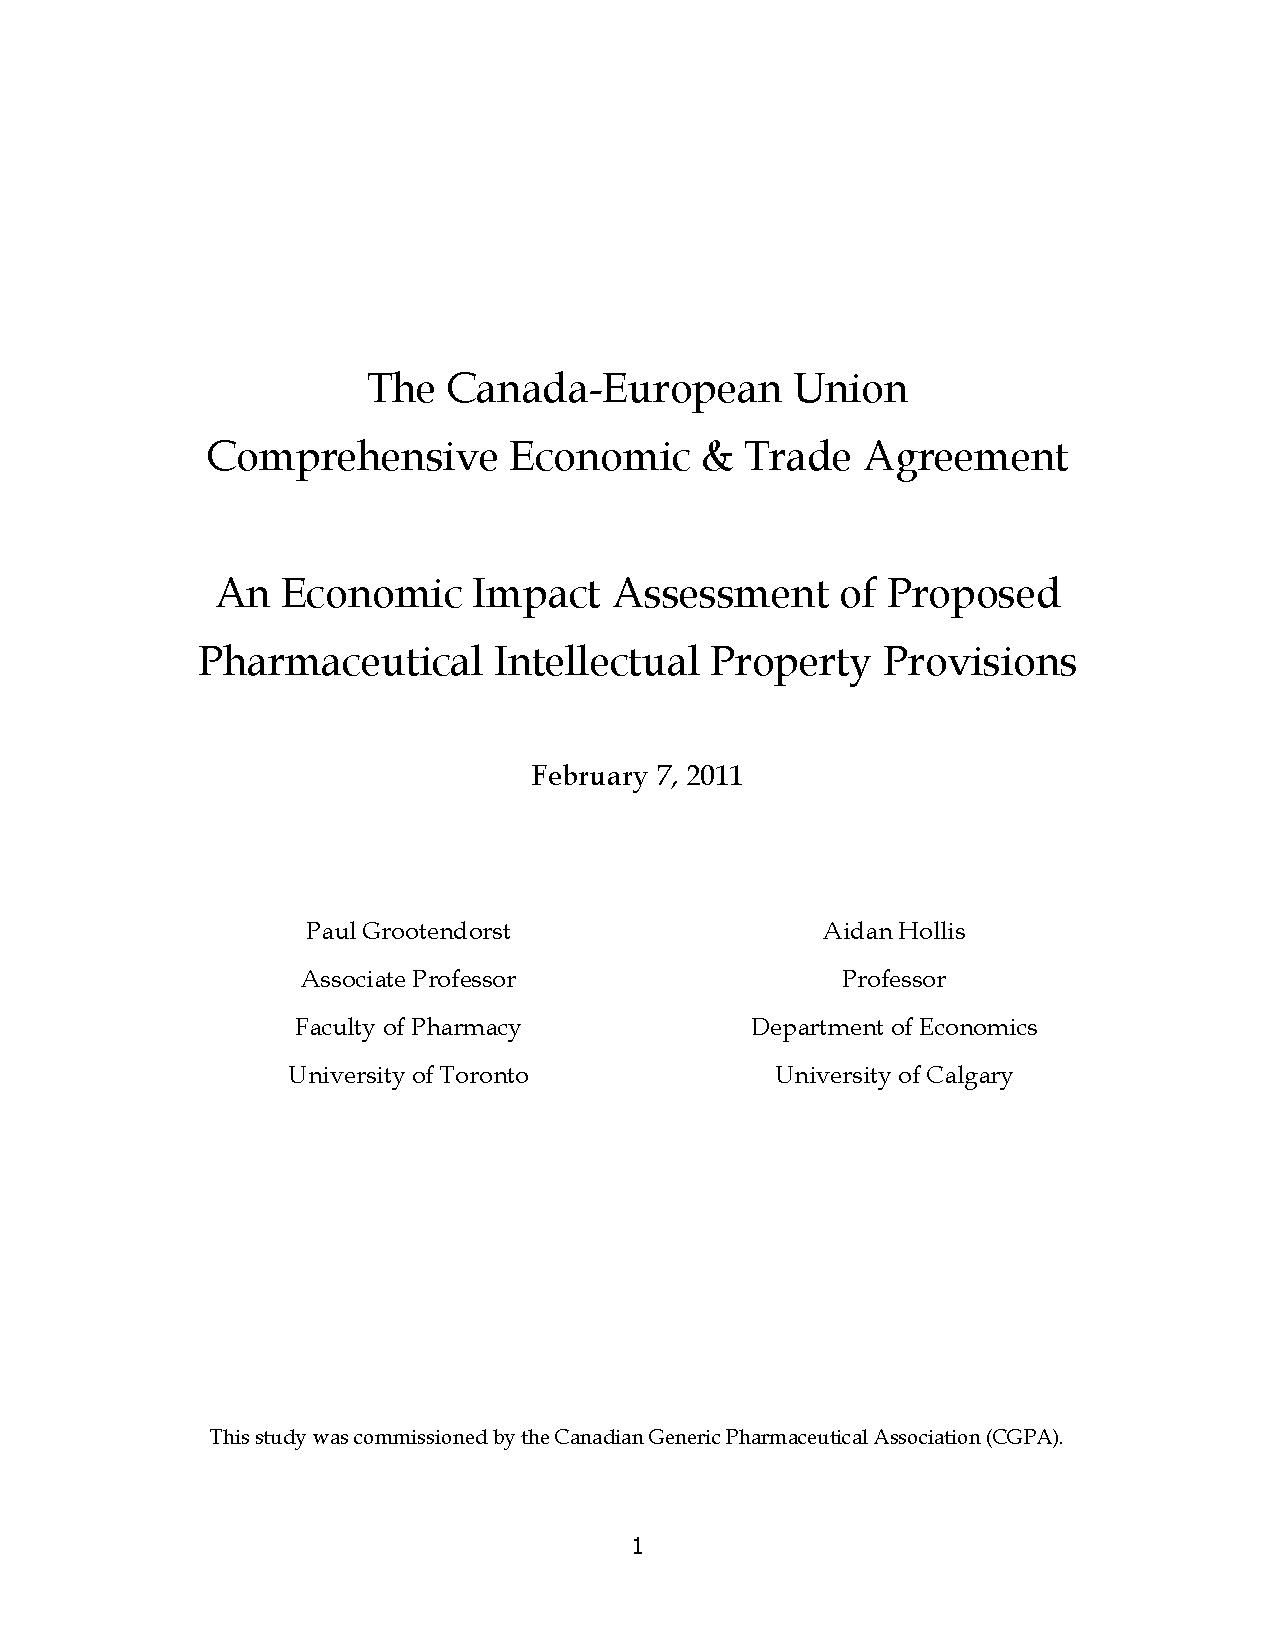 CETA-20110702-Economic Impact Assessment of Proposed Pharmaceutical Intellectual Property Provisions.pdf